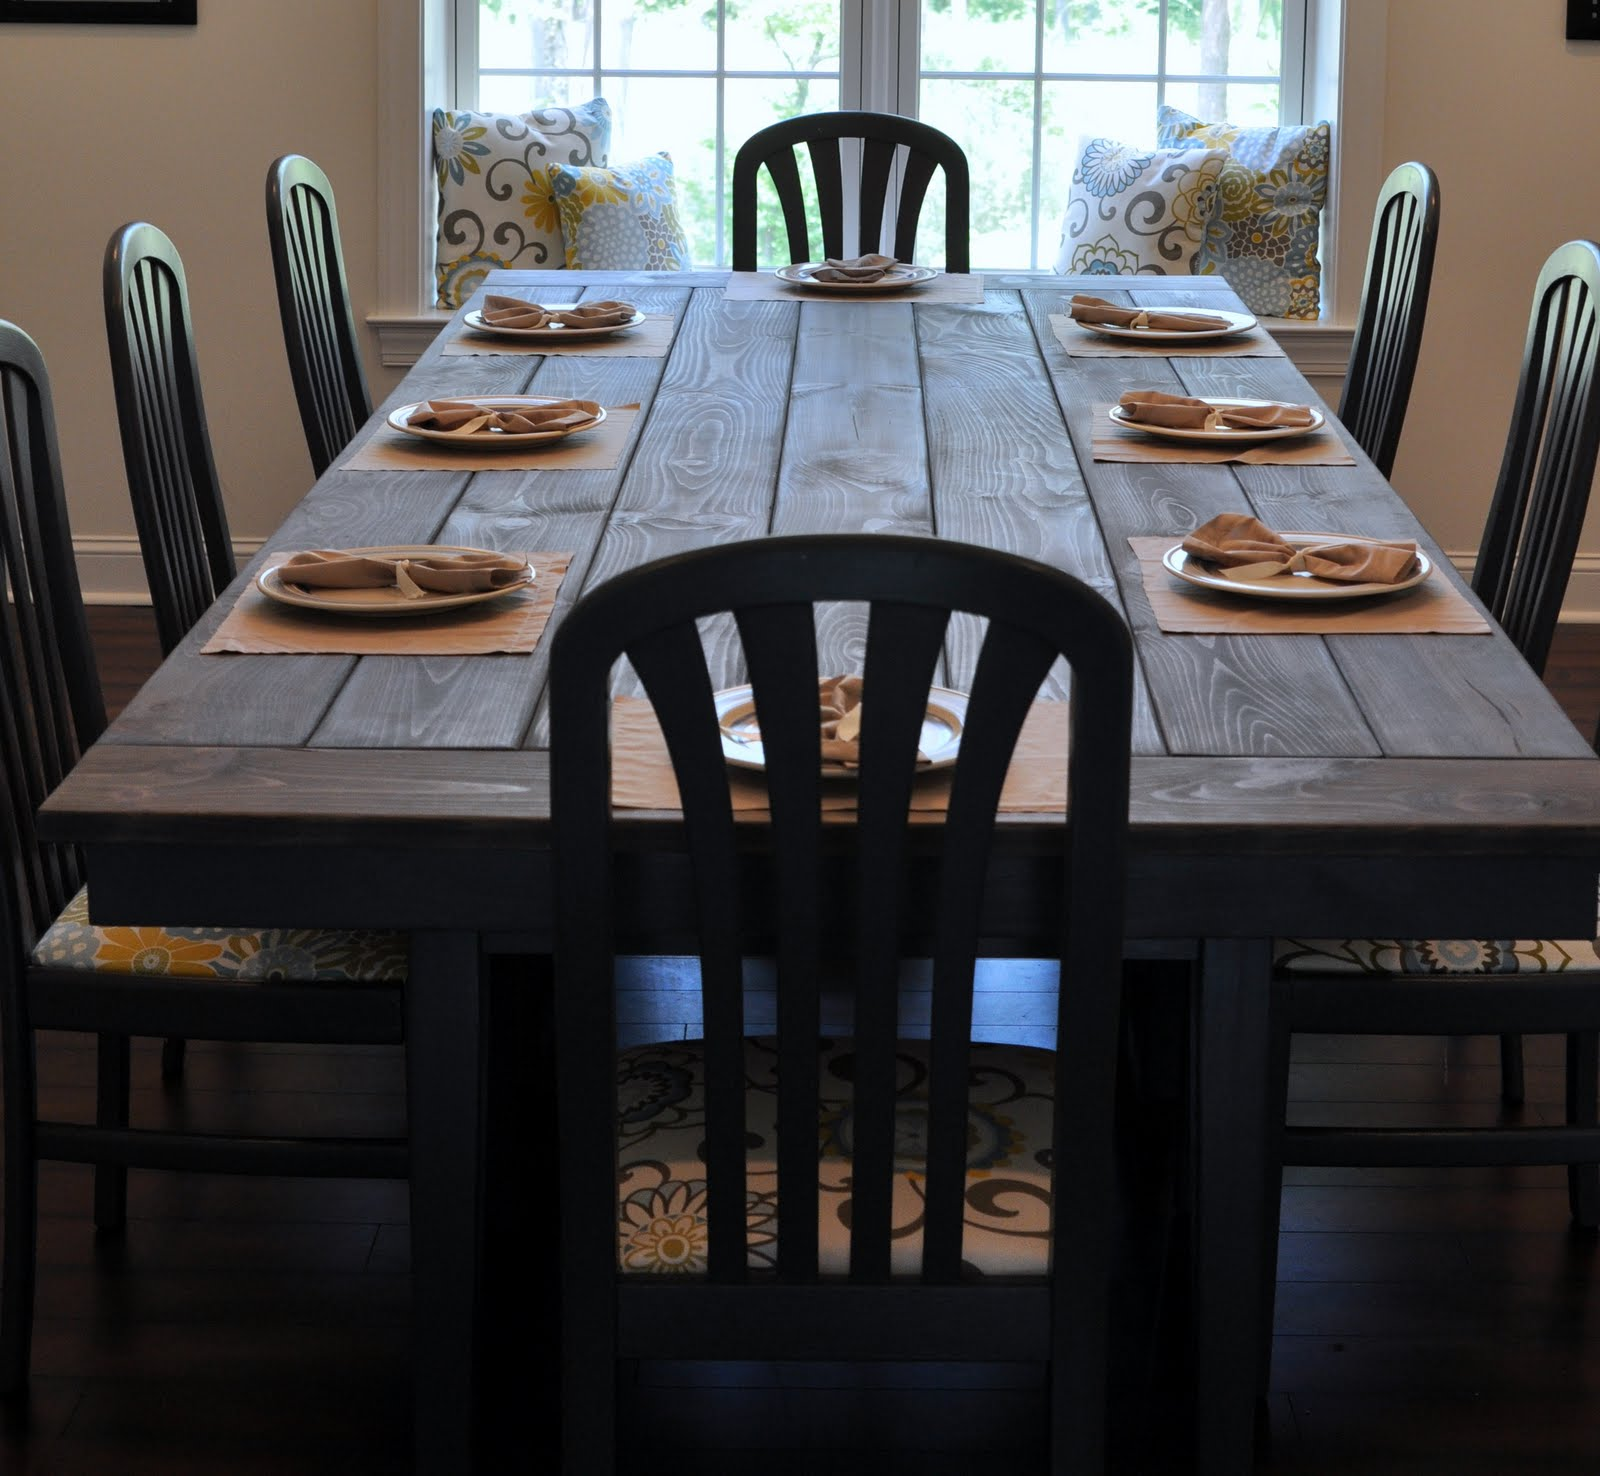 How to make a farmhouse dining table large and beautiful photos to select How to make a